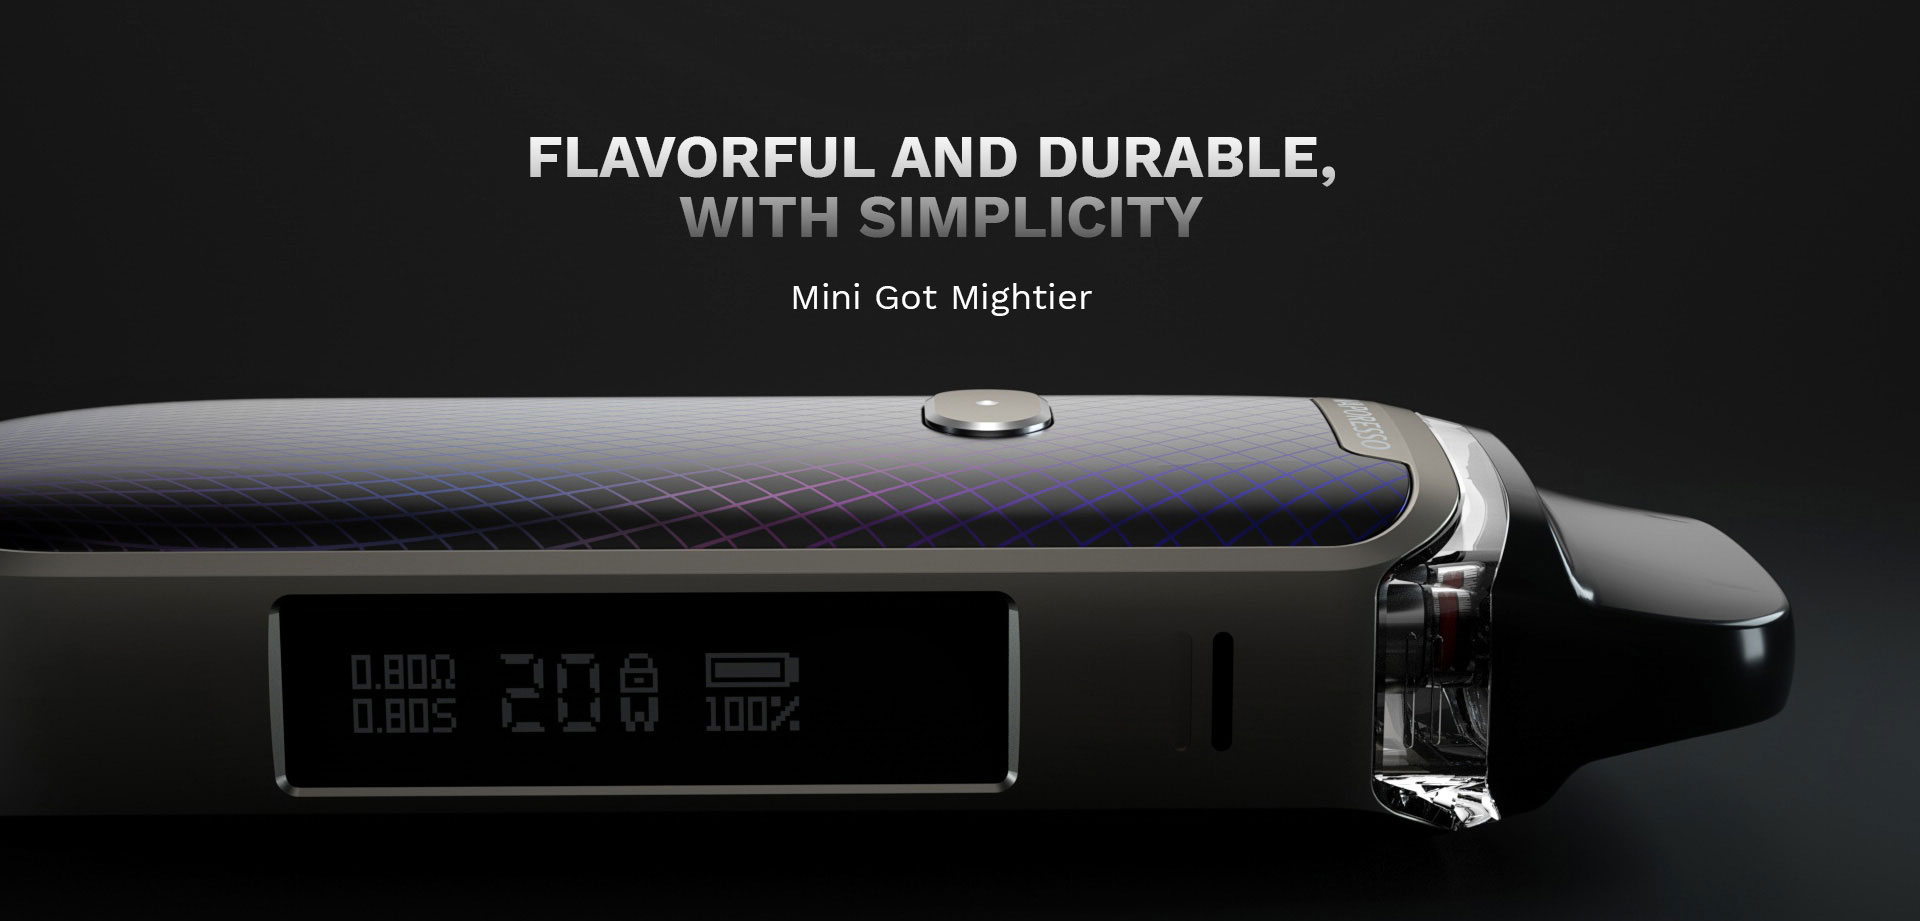 Vaporesso Luxe PM40 Kit Specifications